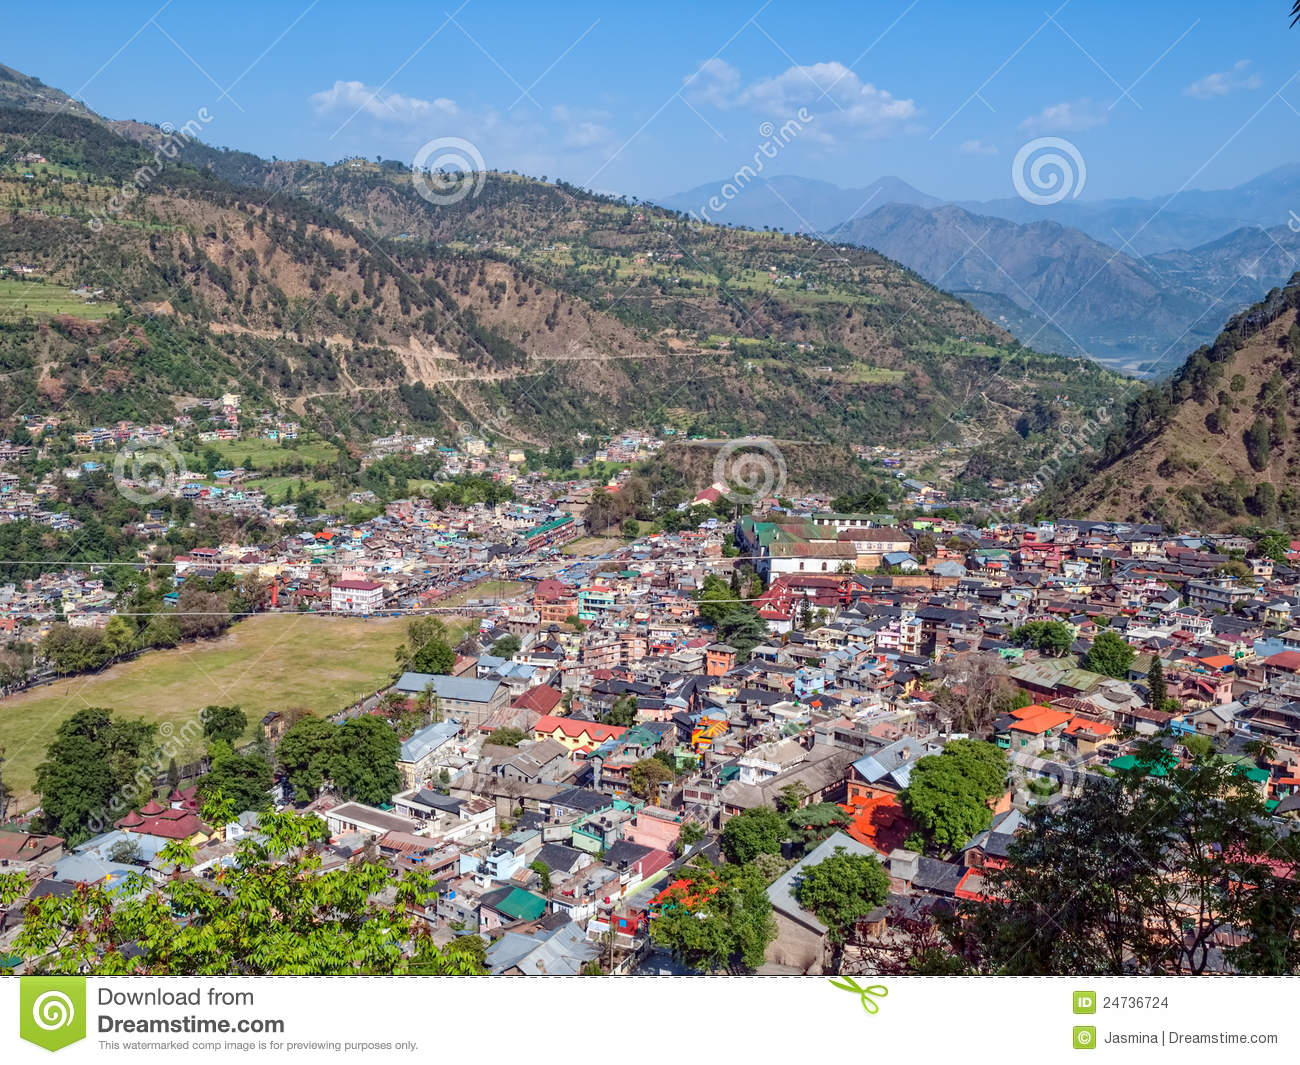 Chamba India  city pictures gallery : ... Chamba district in the state of Himachal Pradesh, in northern India